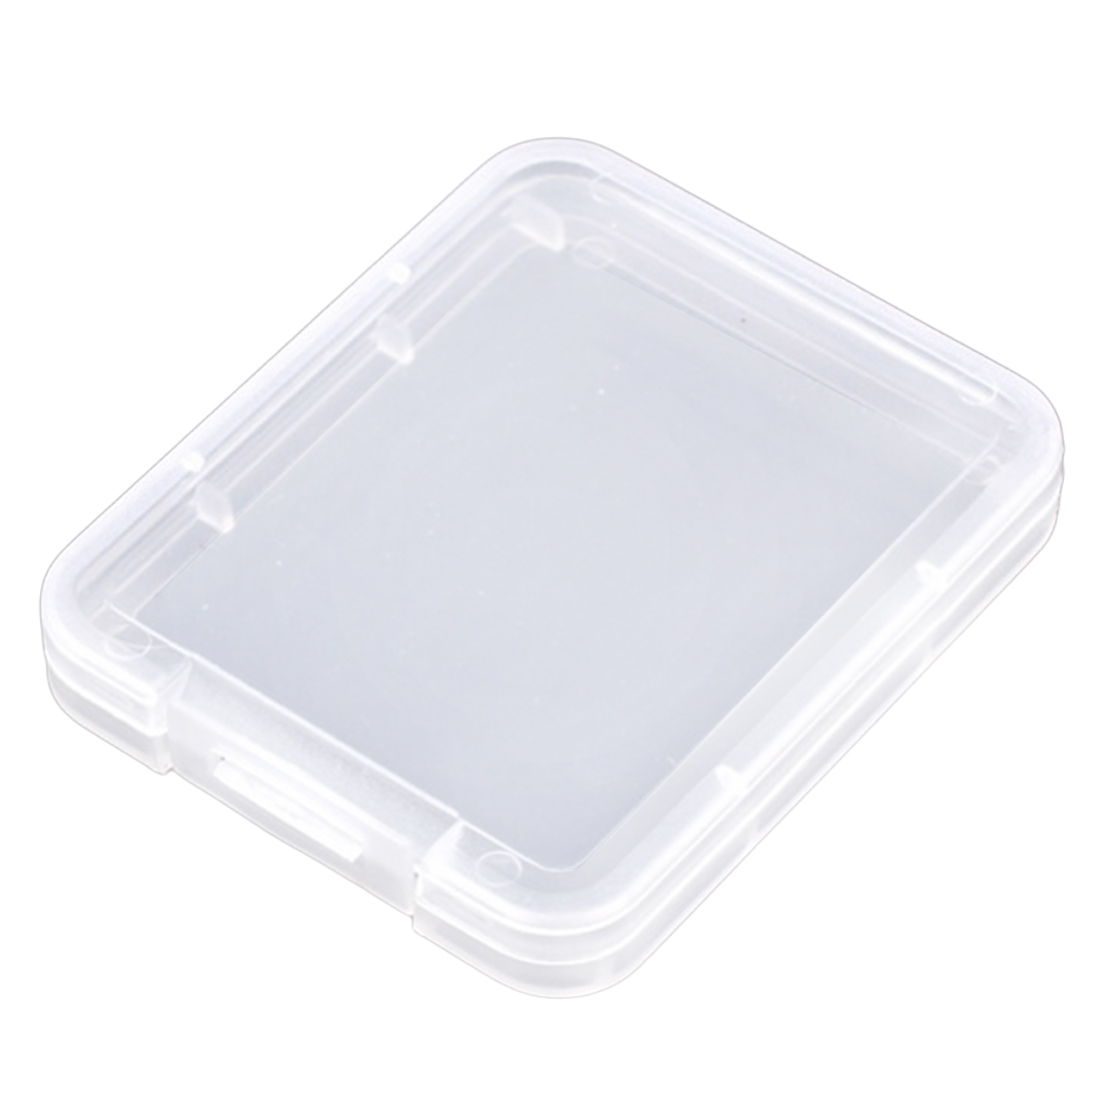 Image 4 - centechia Transparent 10 Pcs CF card box memory card case Compact Flash Card Case Transparent Eco friendsly Plastic Case-in Memory Card Cases from Computer & Office